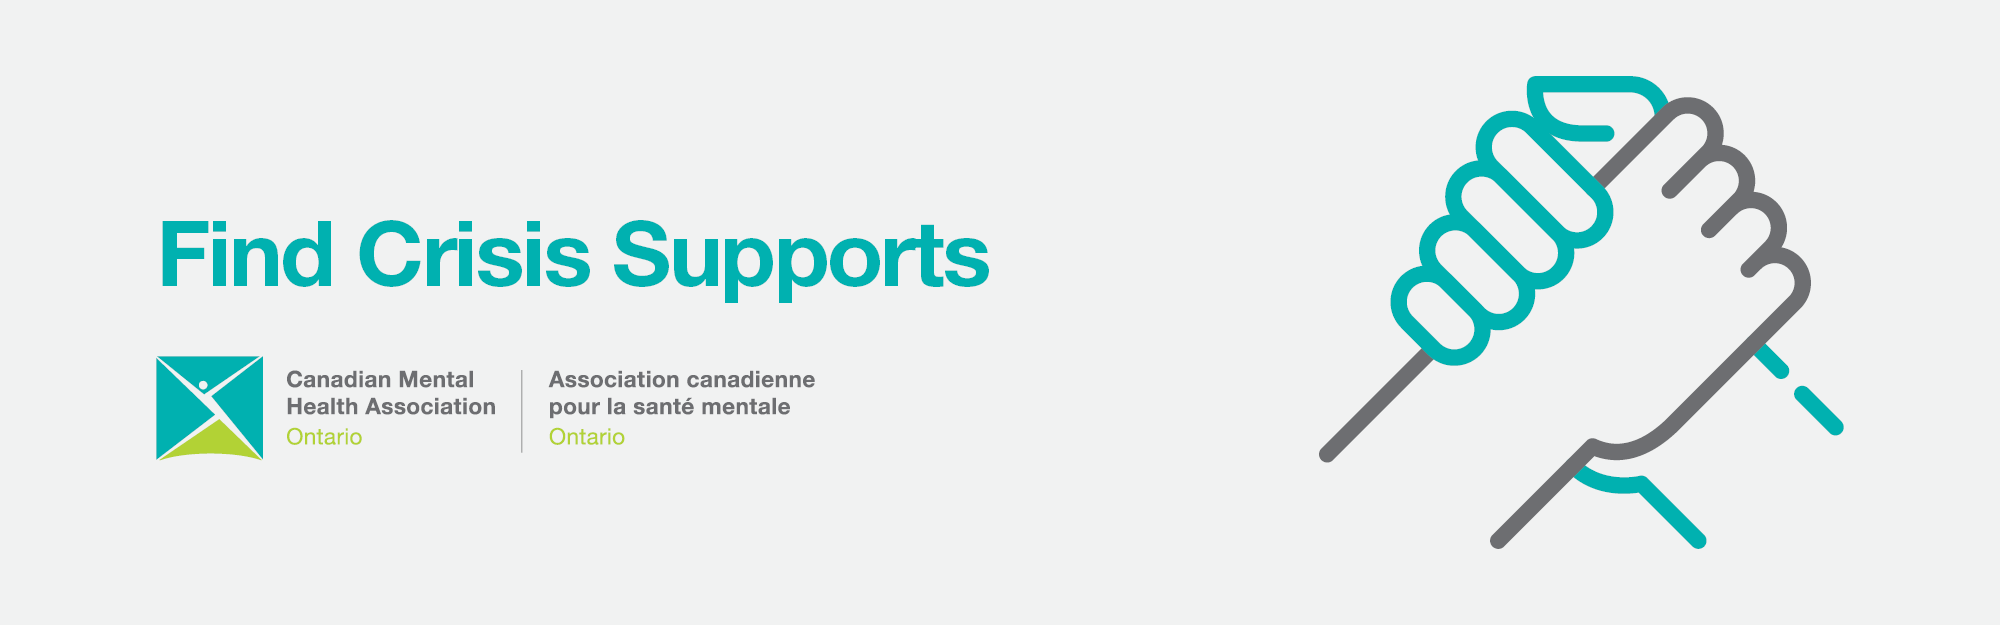 PROVINCIAL MENTAL HEALTH SUPPORTS